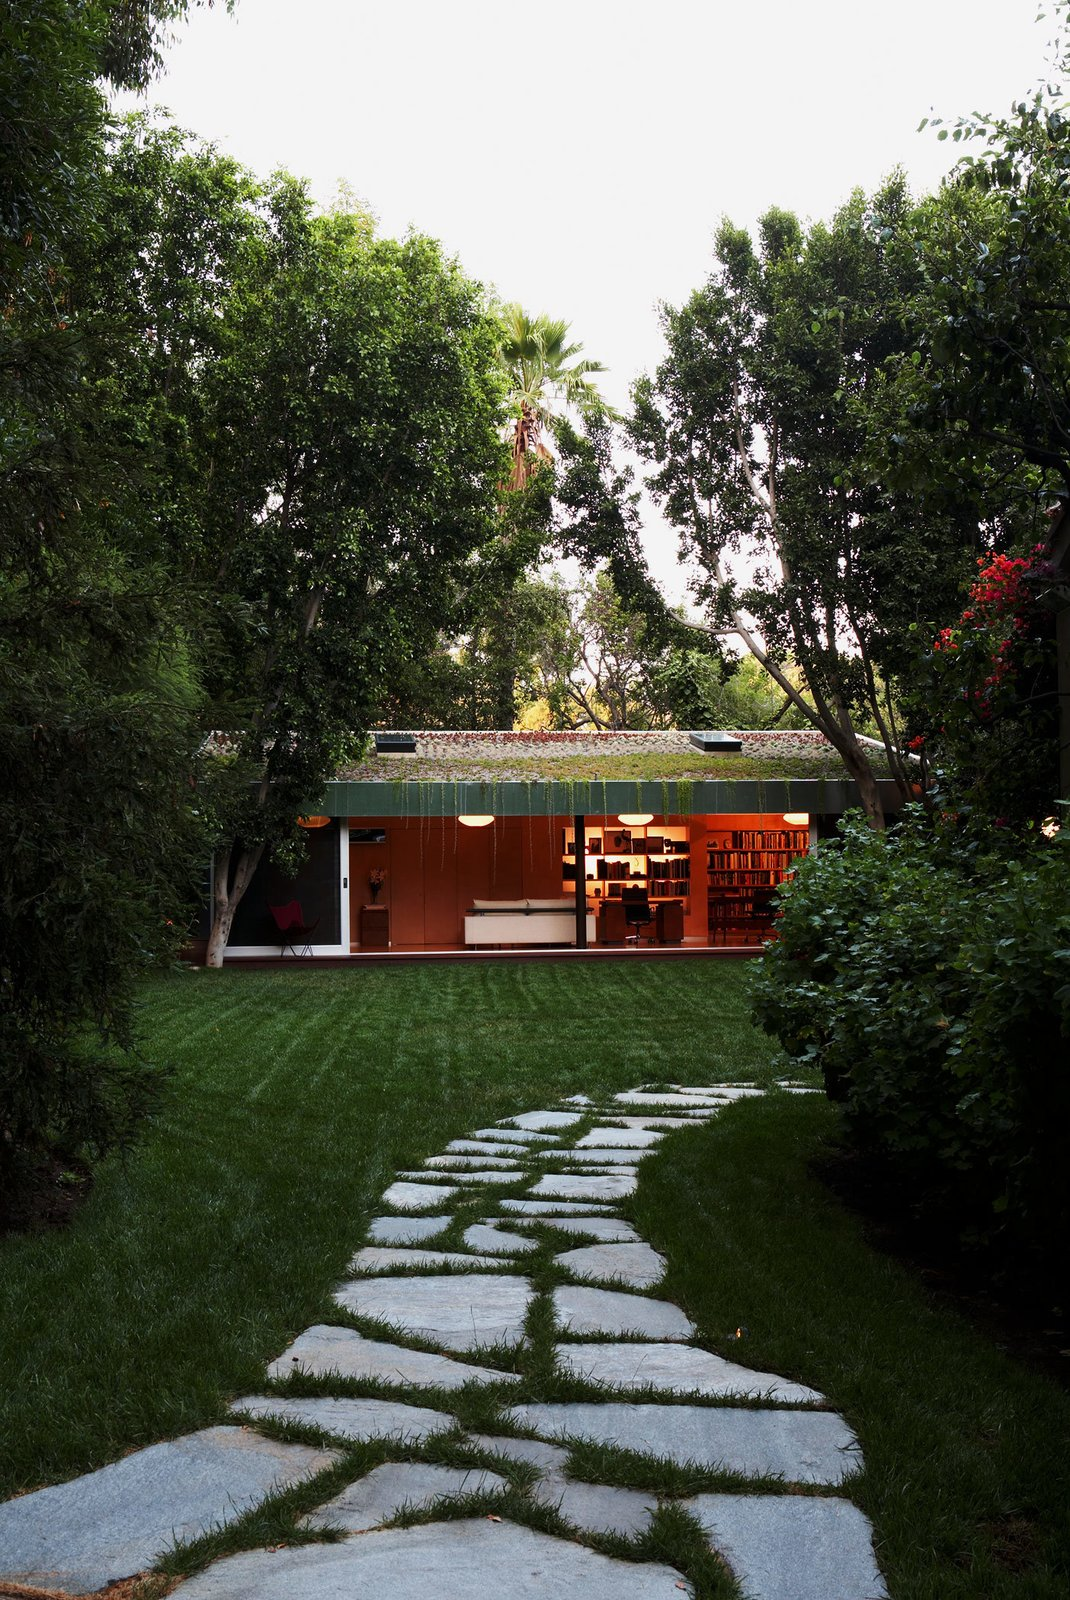 #LushHouse #modern #midcentury #hillside #seclusion #lighting #exterior #outside #landscape #pathway #plants #trees #BeverlyHills #KingsleyStephensonArchitecture